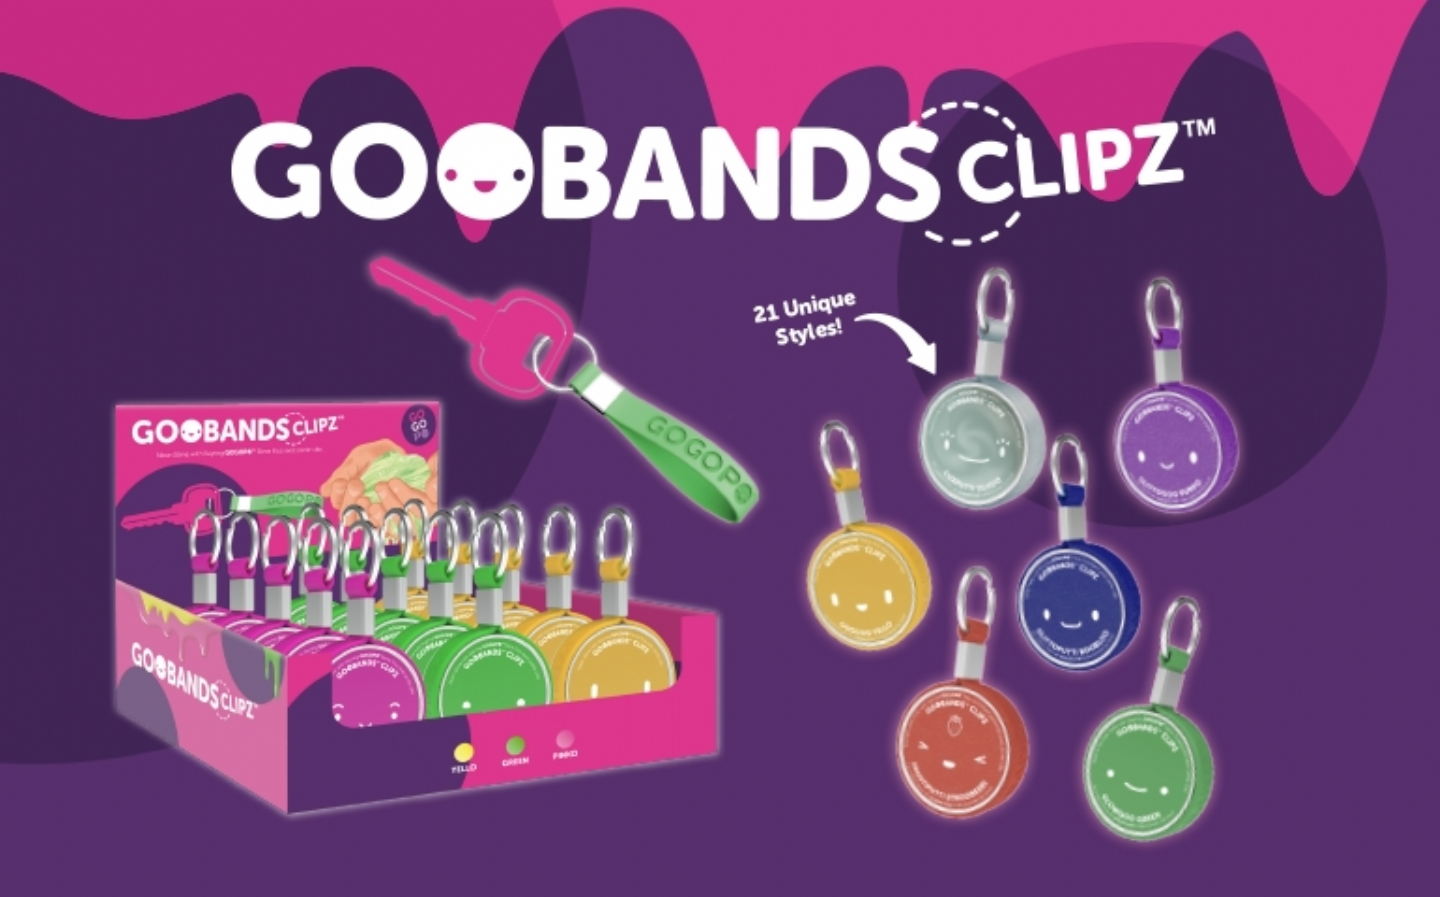 Goobands CLIPZ slime - perfect for on-the-go gooey fun!